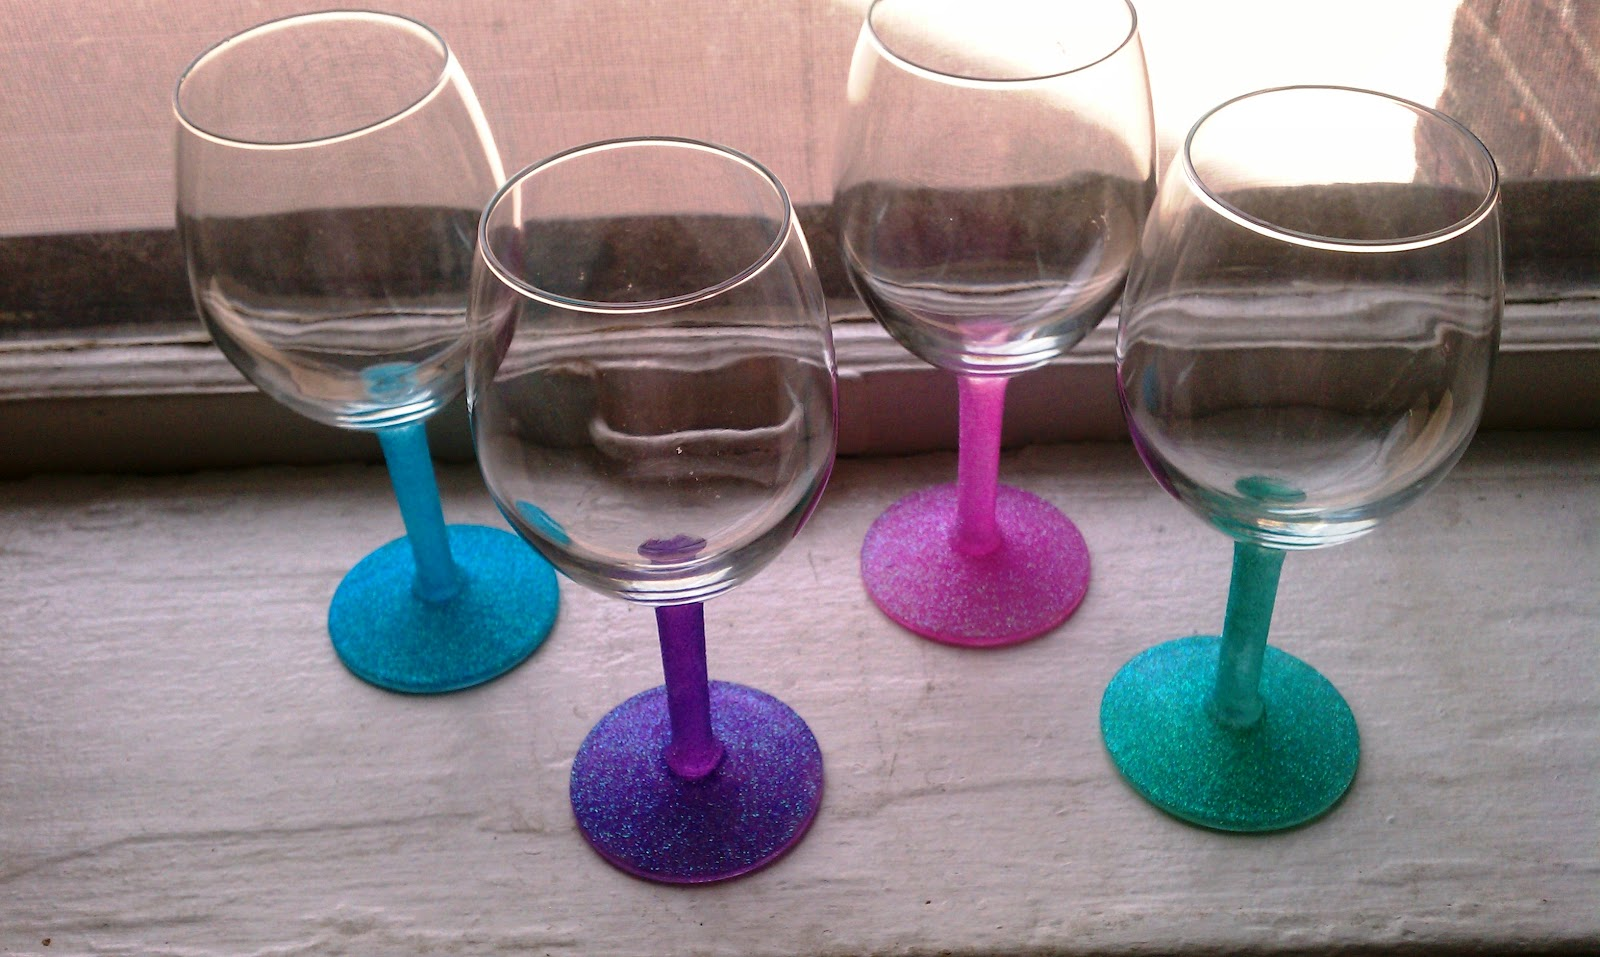 Uncategorized Dishwasher Safe Paint For Glass cupcakes couture diy glitter wine glasses glasses